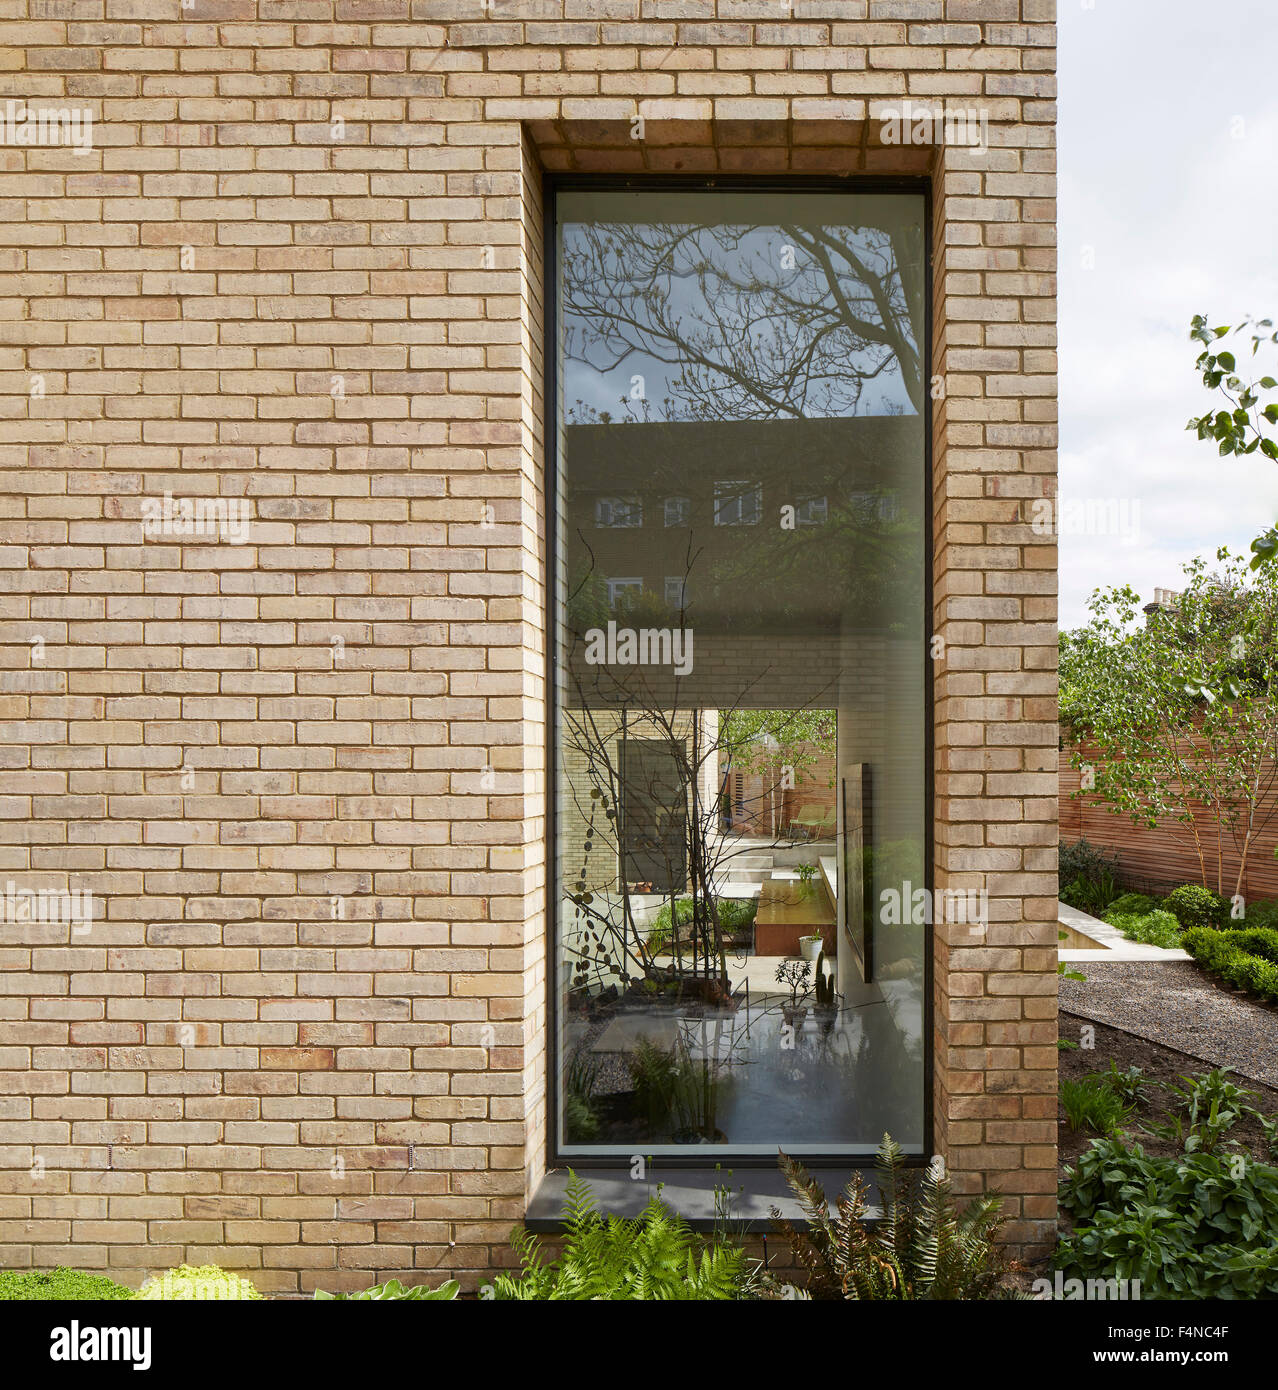 View through recessed window. Luker House, London, United Kingdom. Architect: Jamie Fobert Architects, 2014. - Stock Image